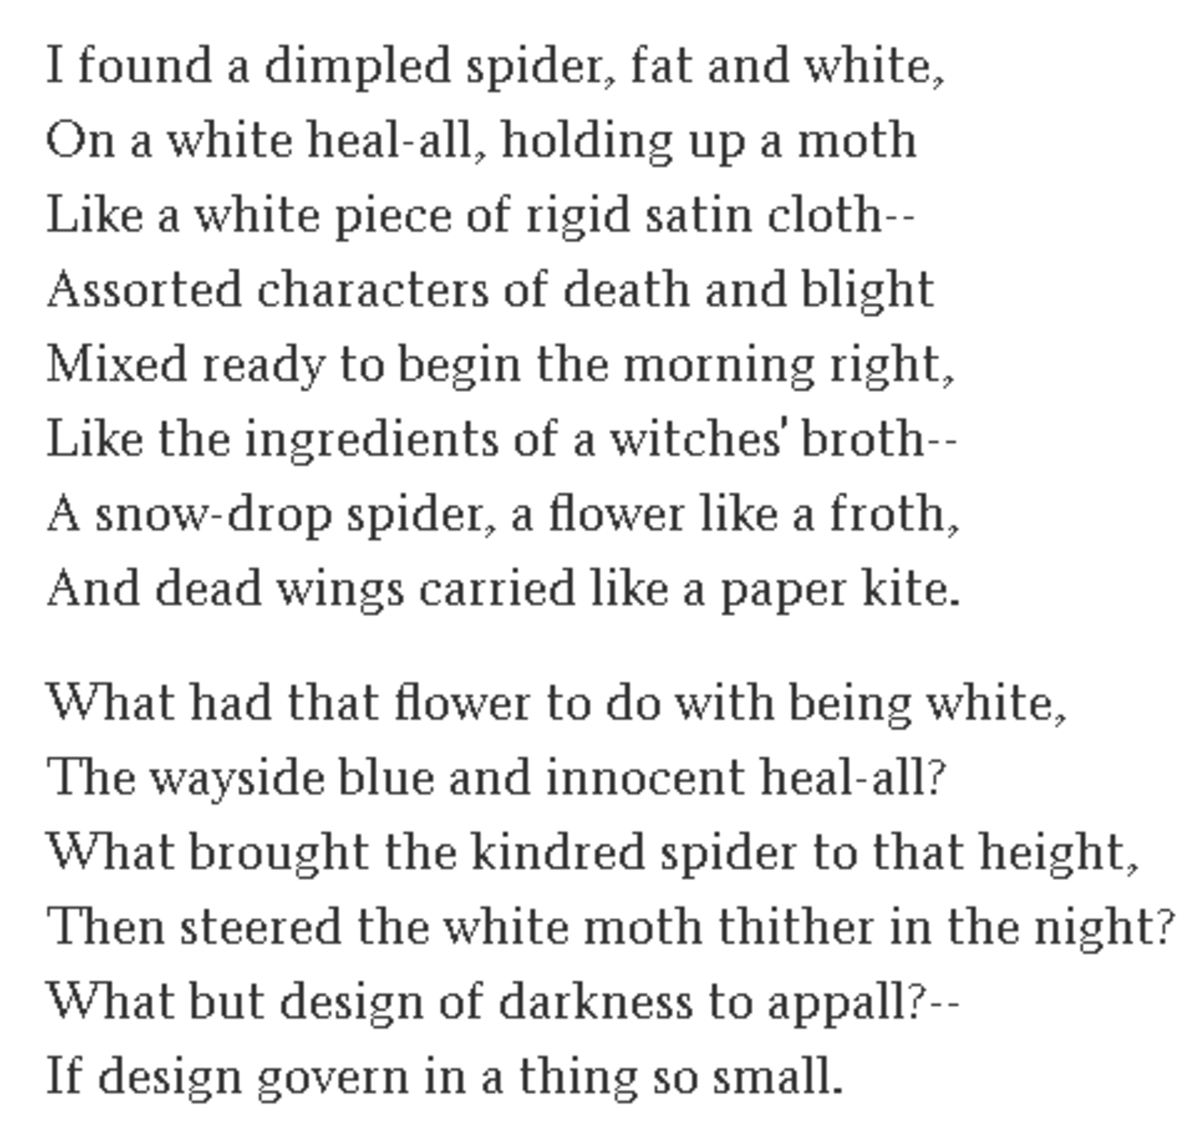 analysis-of-poem-design-by-robert-frost